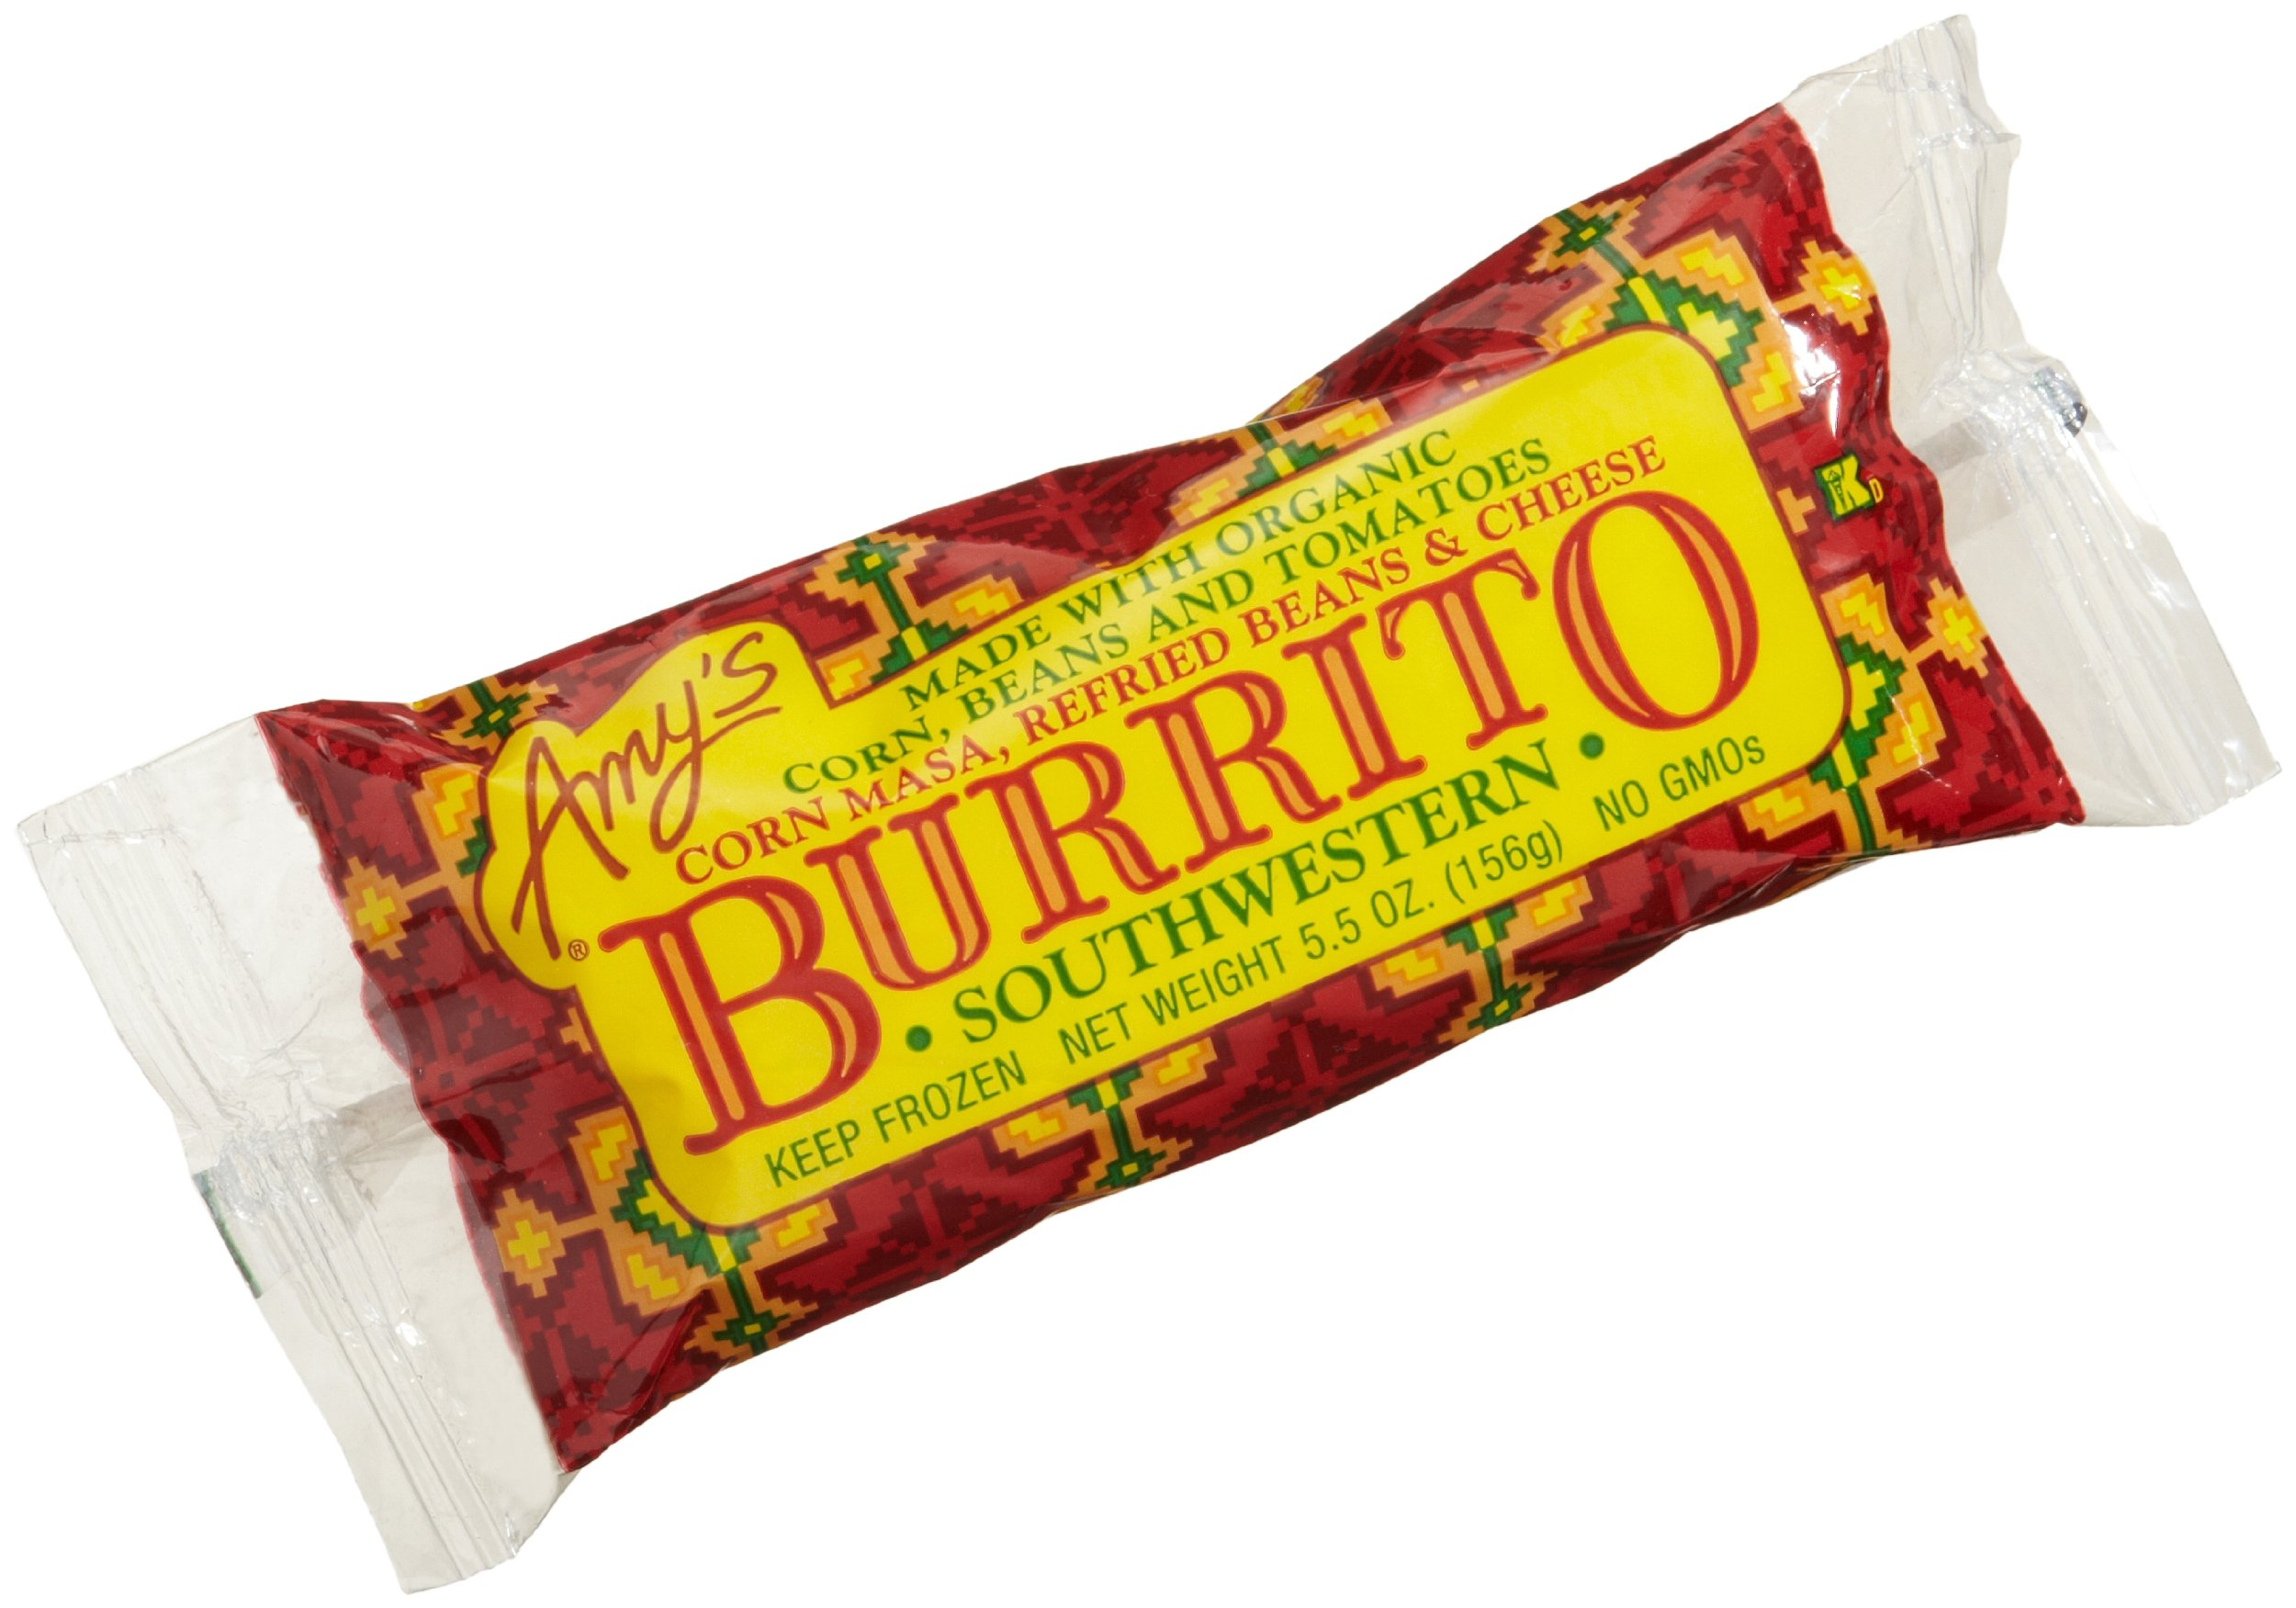 Amy's Southwestern Burrito, Organic, 5.5-Ounce Boxes (Pack of 12)